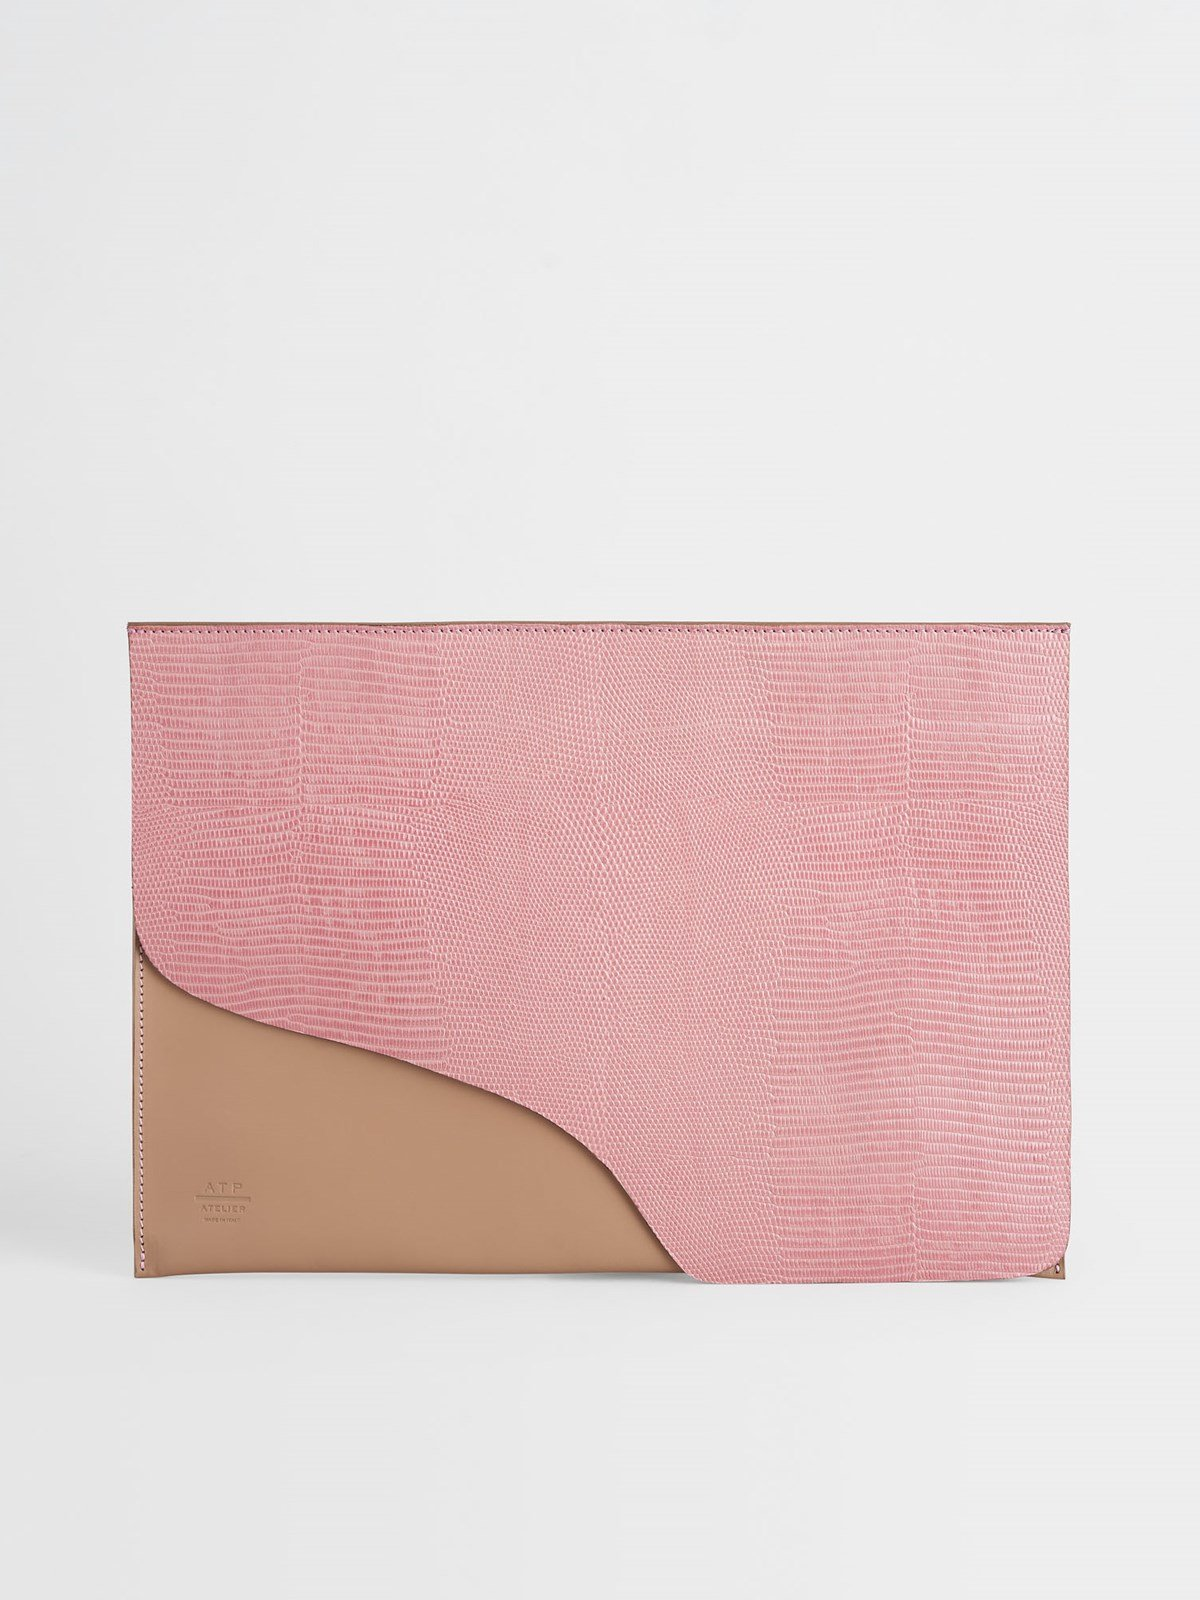 Sardegna Grande Candy Pink Laptop case